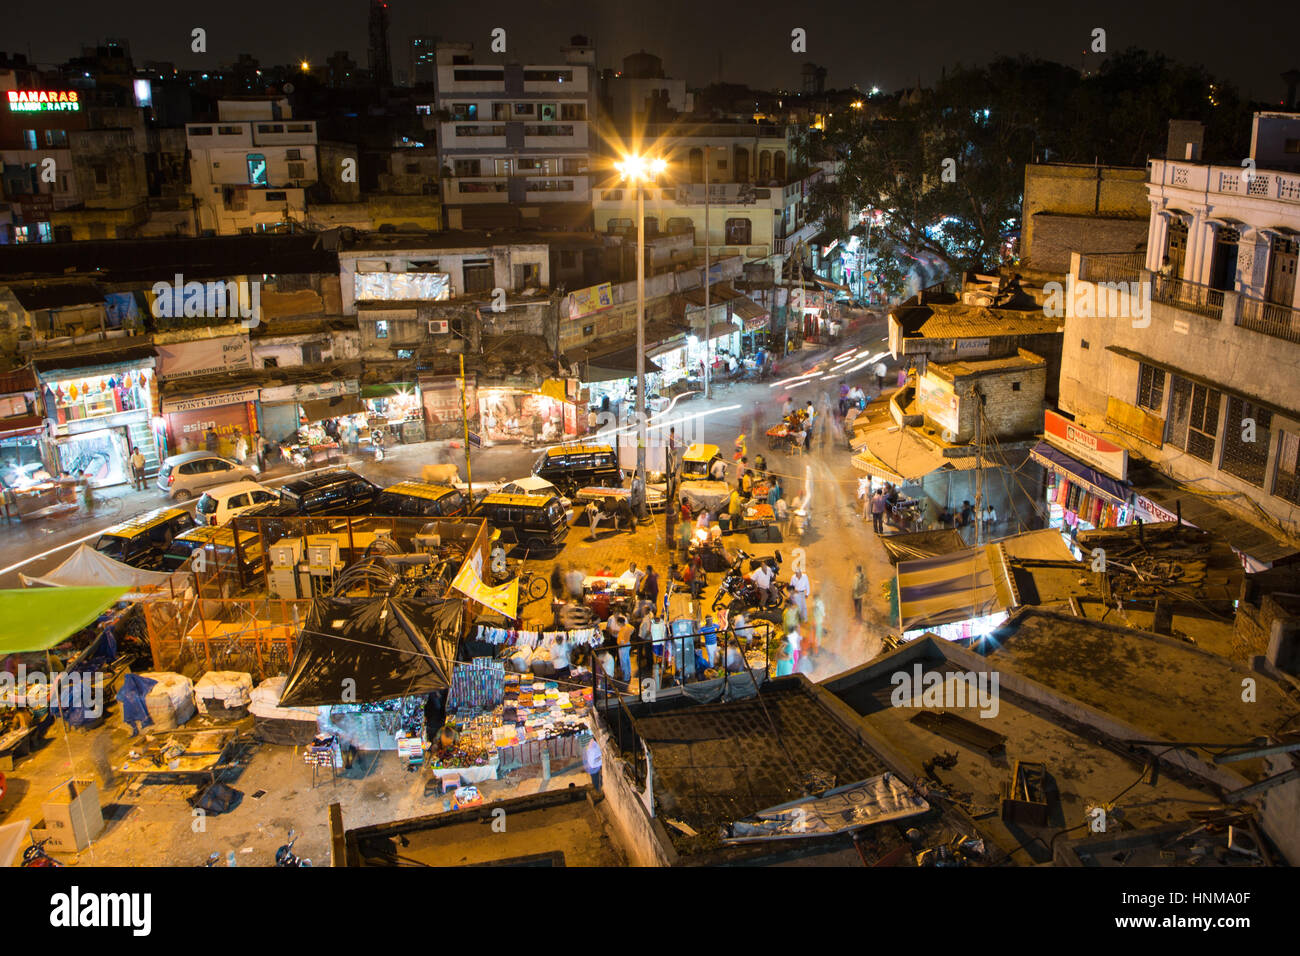 New Delhi, India - September 7 2014: People, captured with blurred motion, walk in the New Delhi bazaar street in - Stock Image